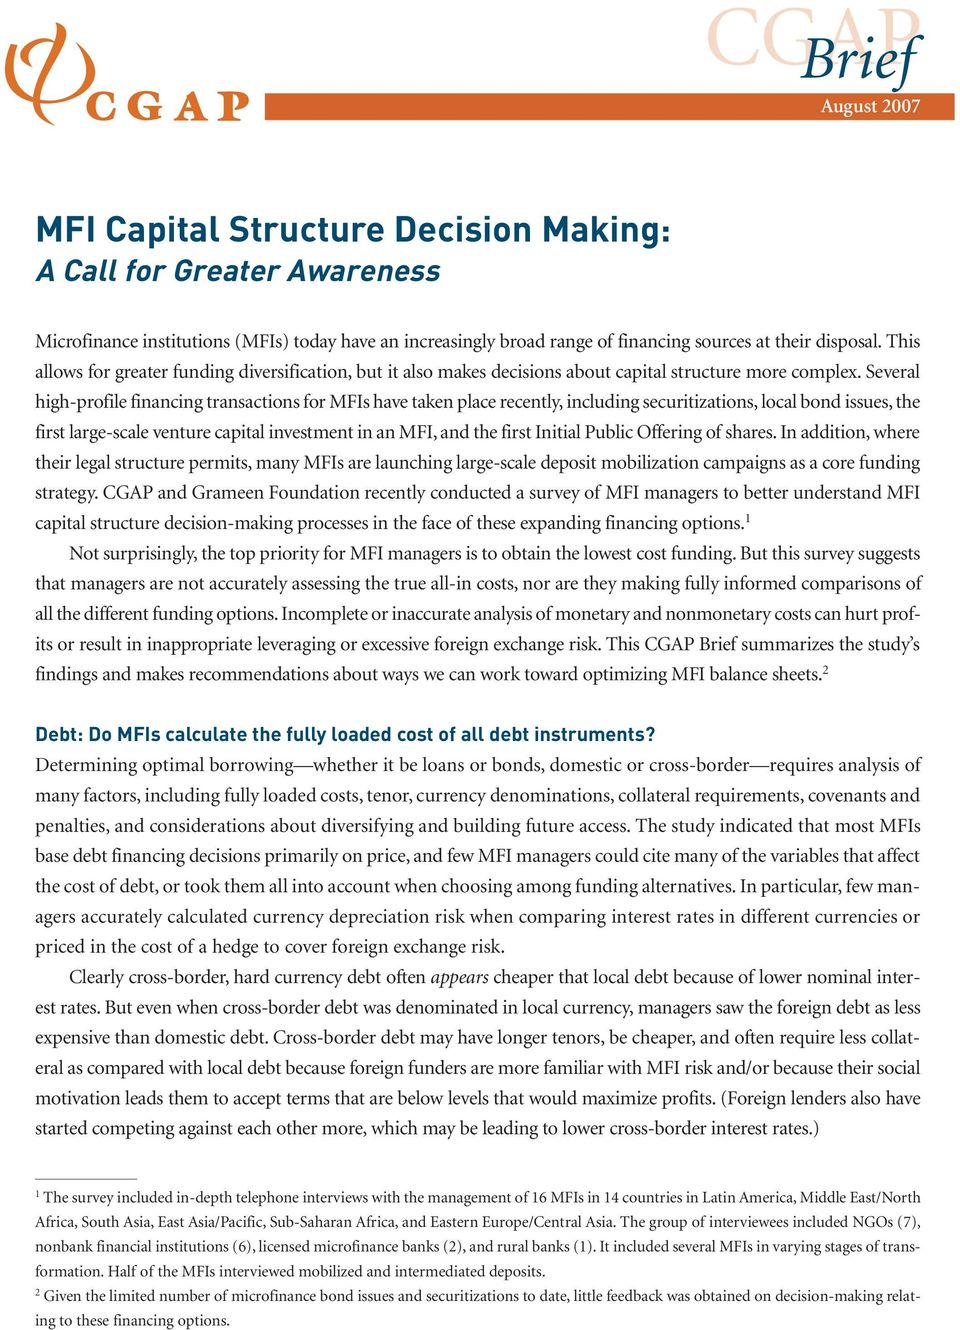 Several high-profile financing transactions for MFIs have taken place recently, including securitizations, local bond issues, the first large-scale venture capital investment in an MFI, and the first